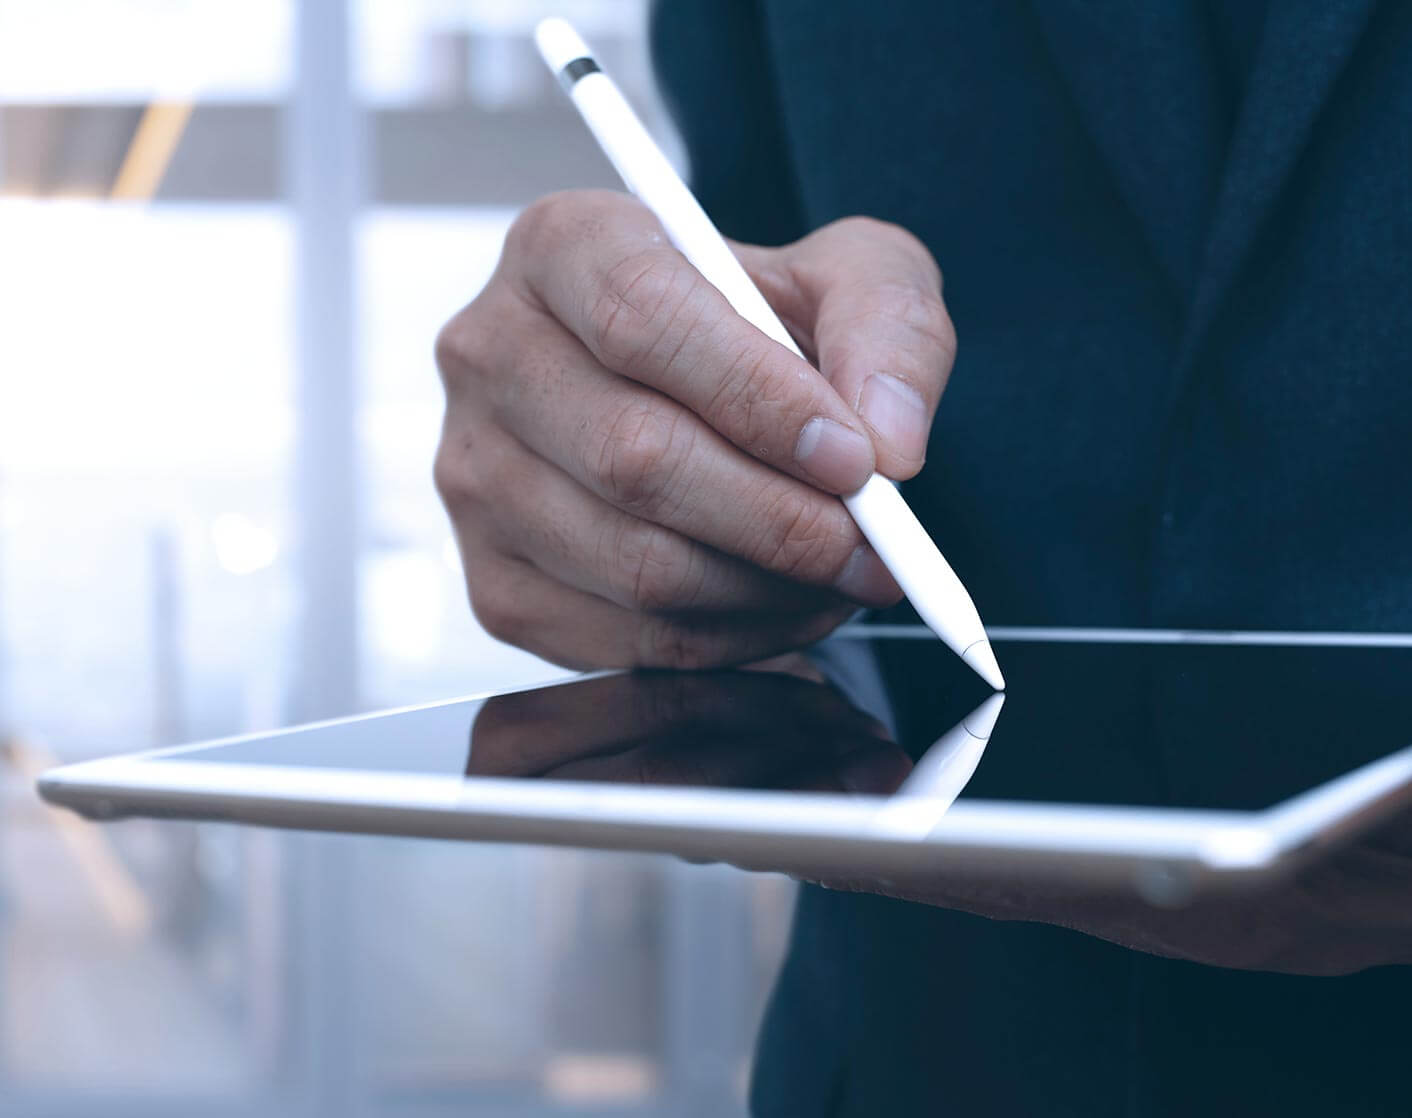 man holding tablet using a white stylus